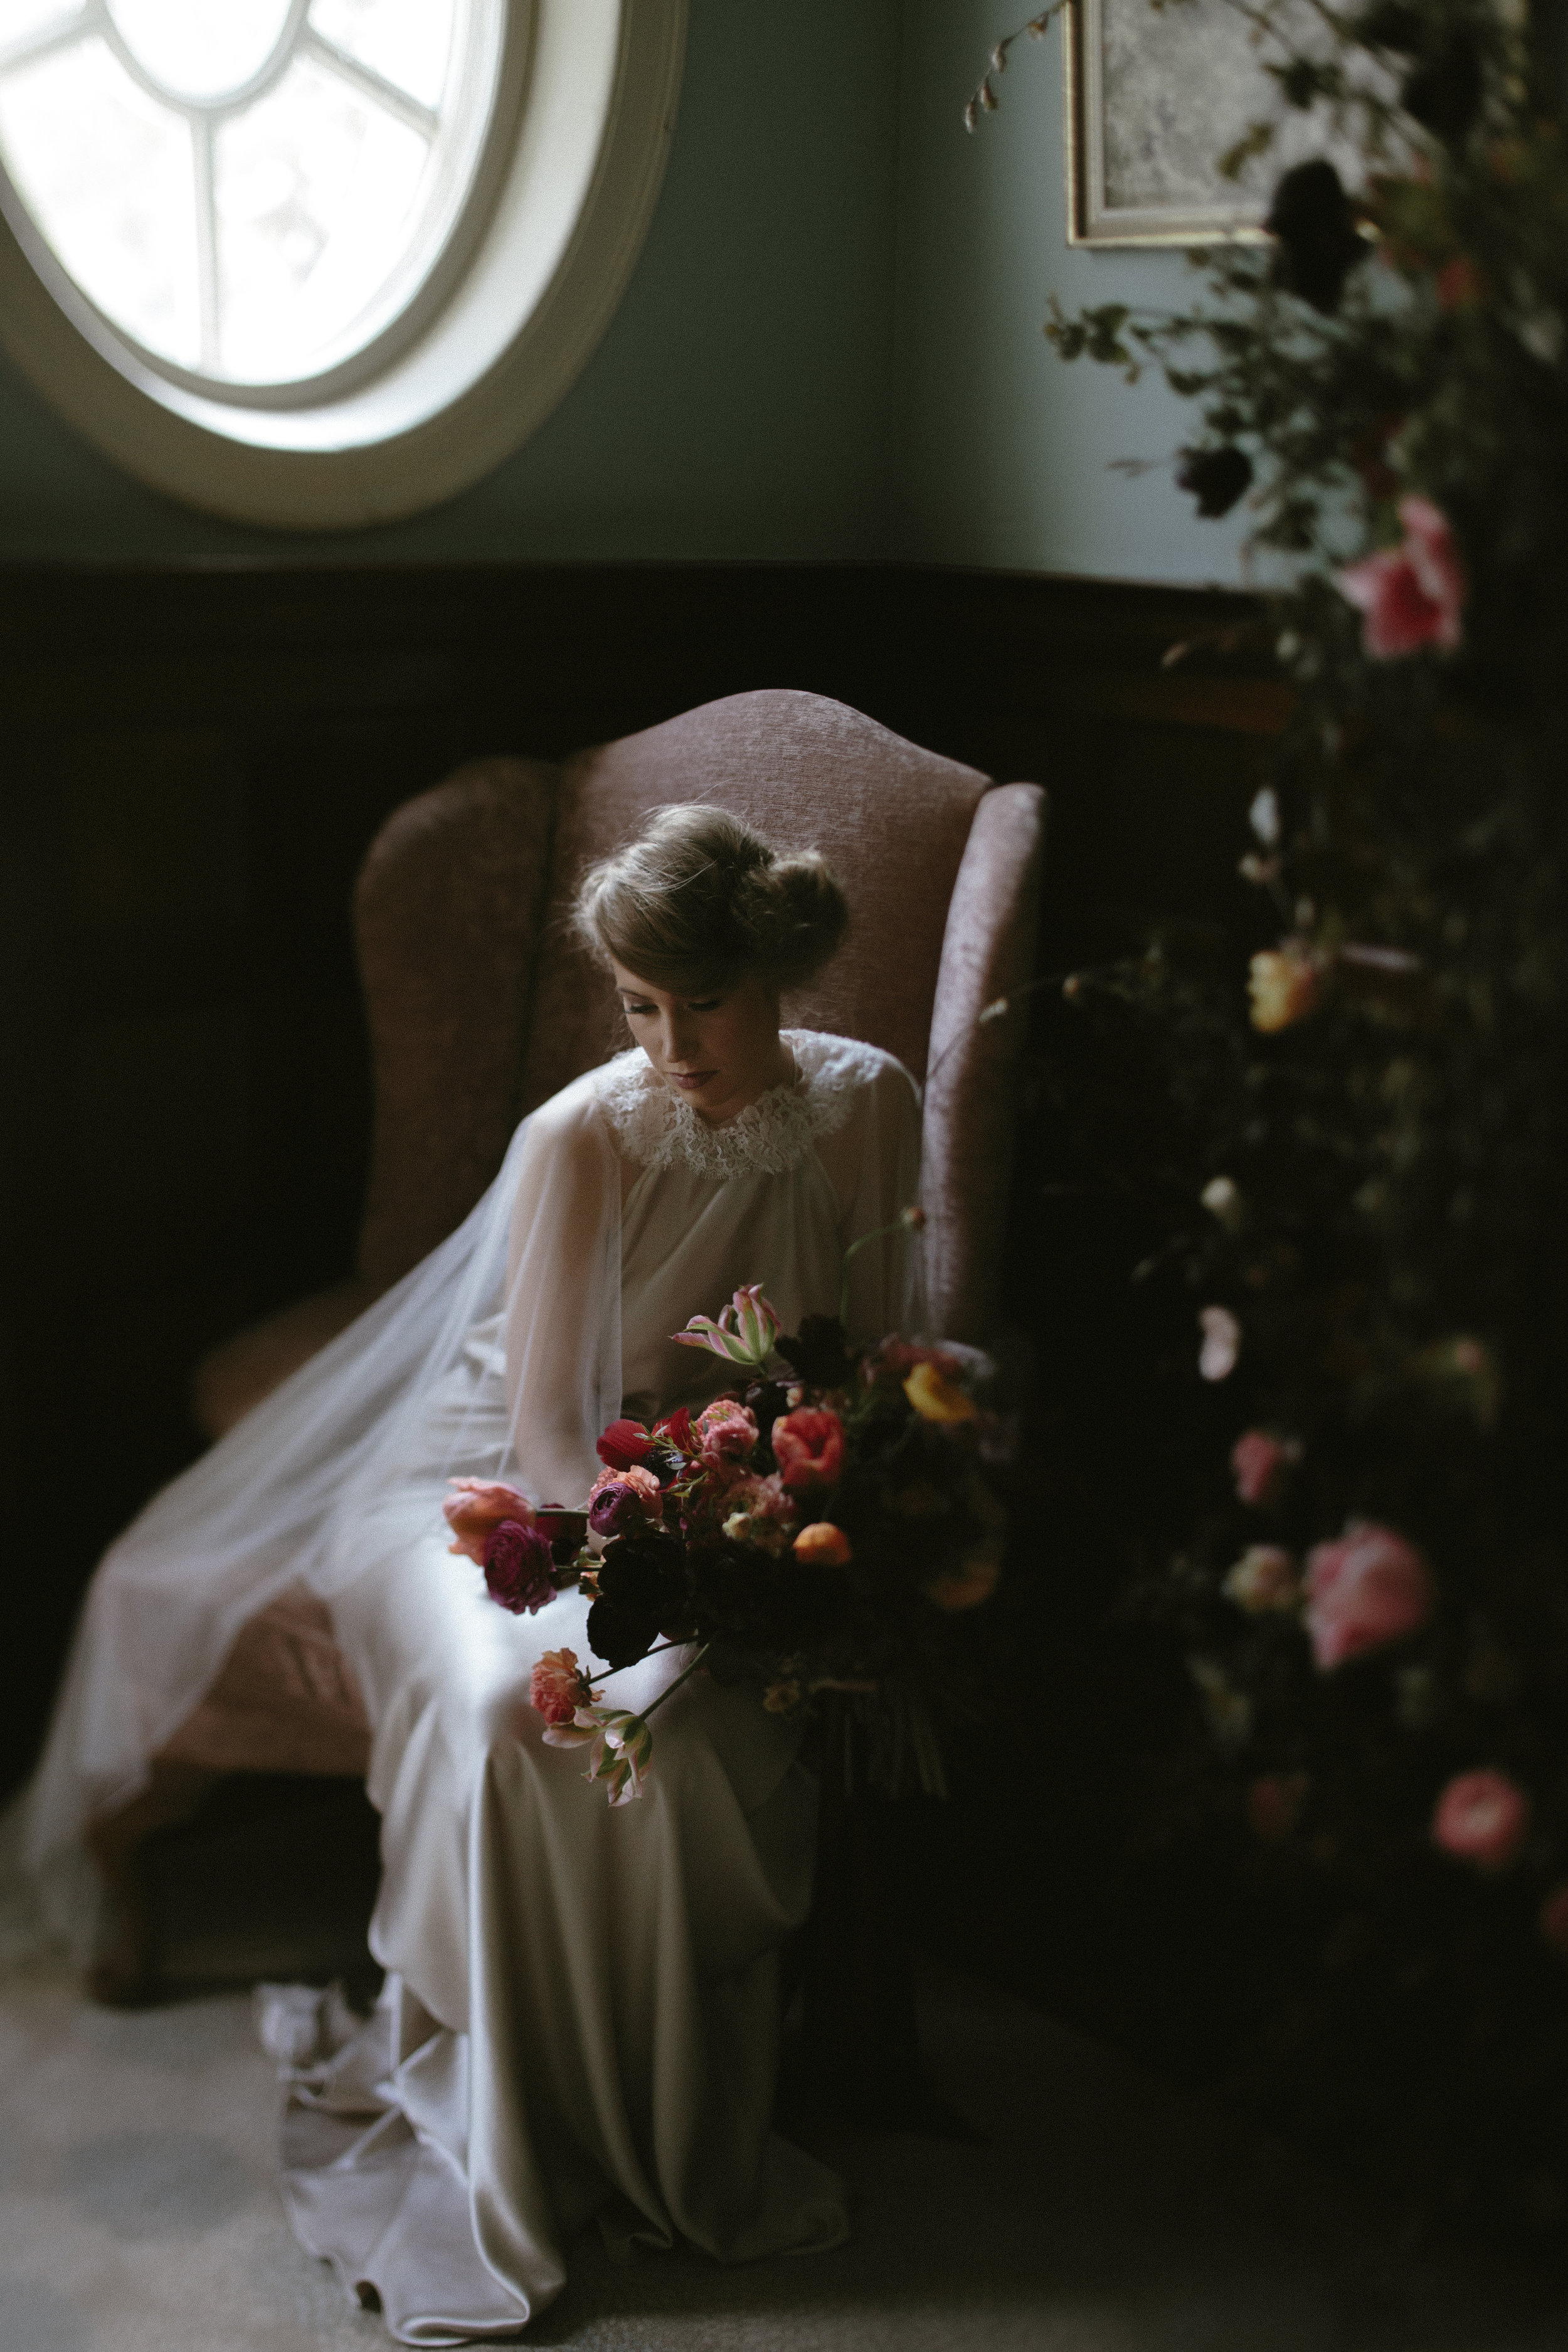 Agnes-and-bee-Kate-Beaumont-wedding-dresses-Ruth-Atkinson-24.jpg